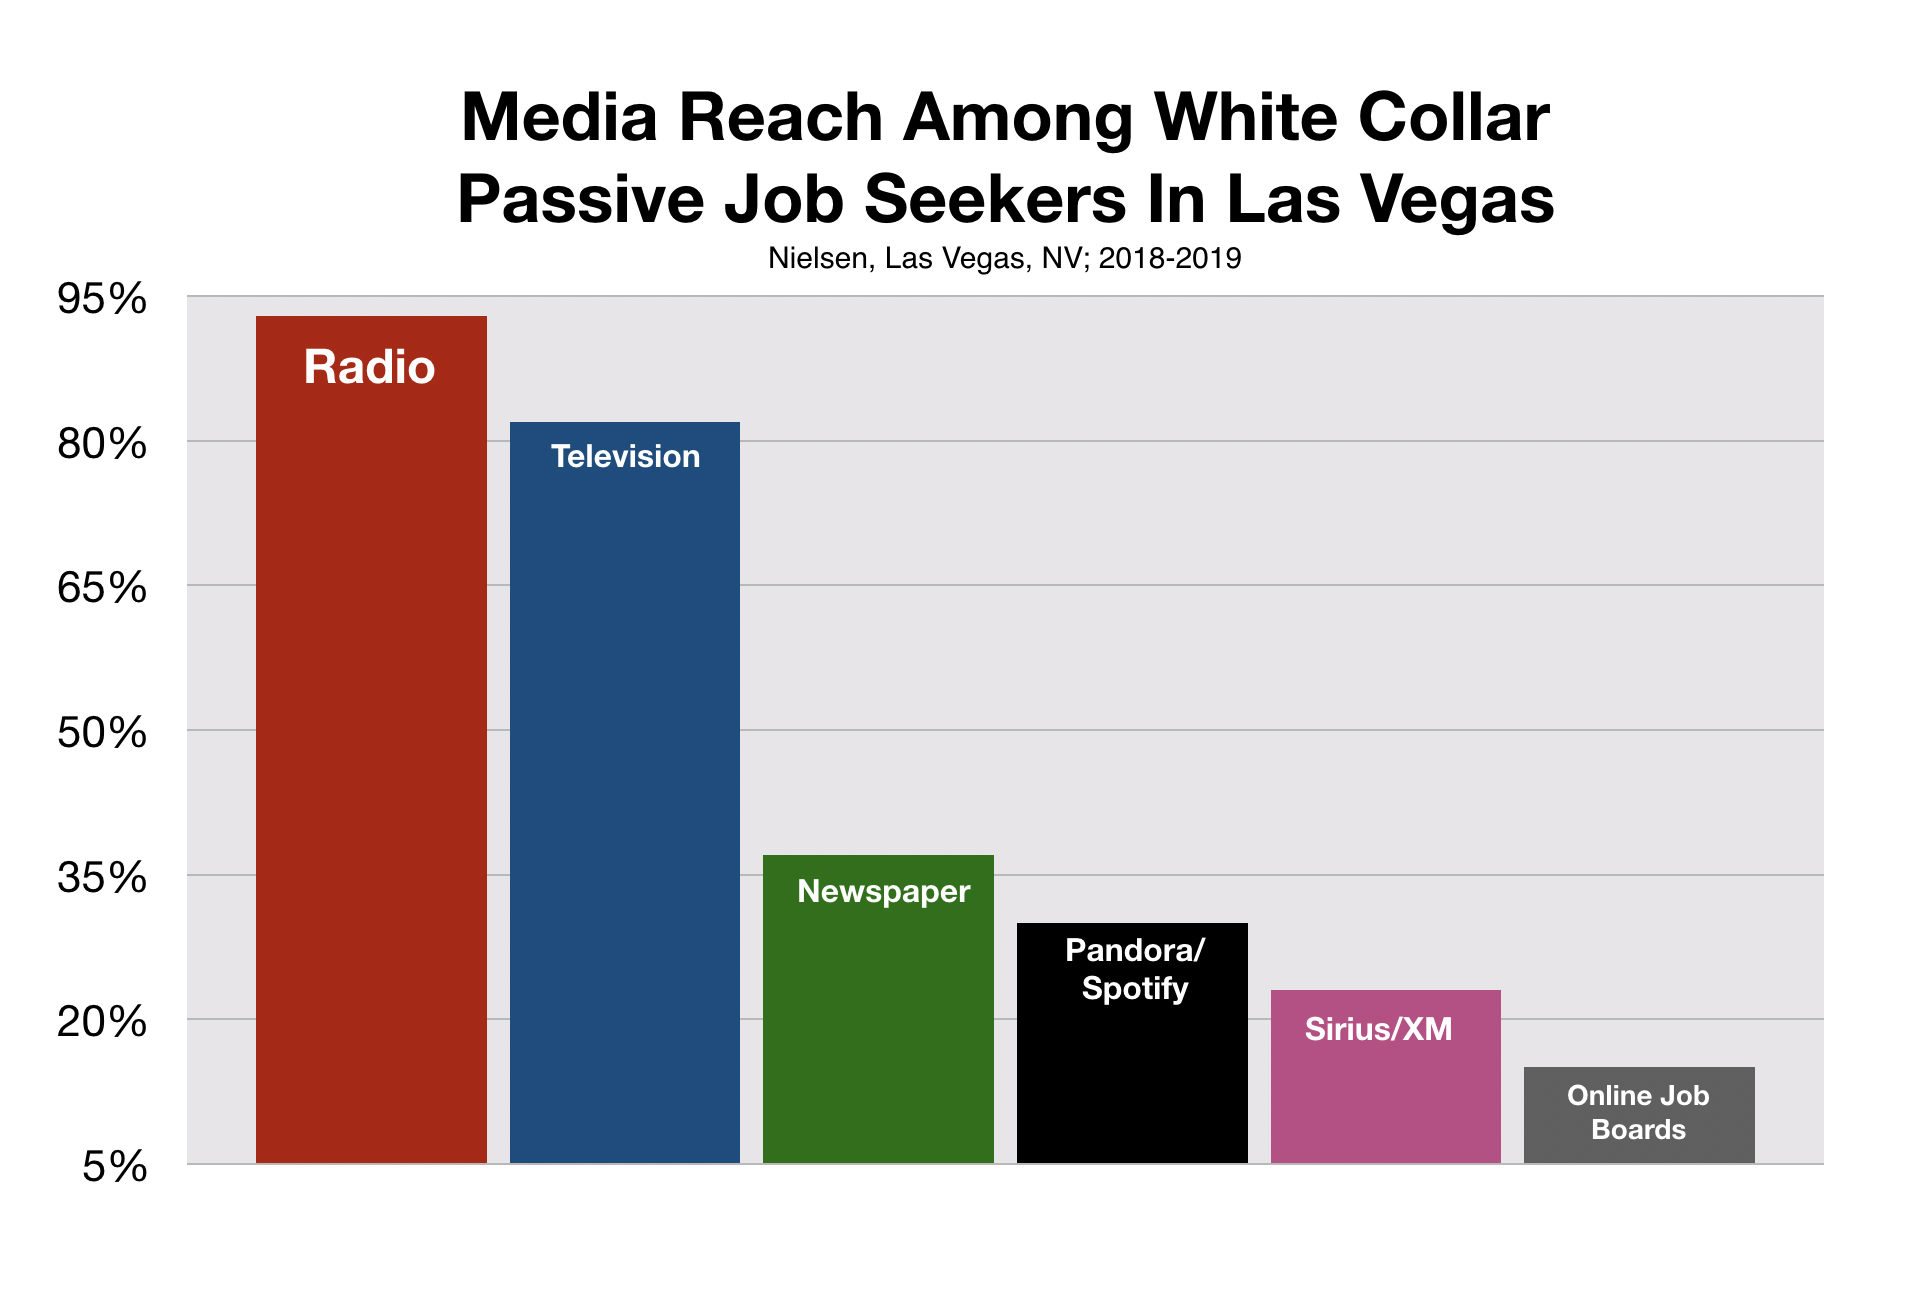 Best Way To Recruit White Collar Workers In Las Vegas